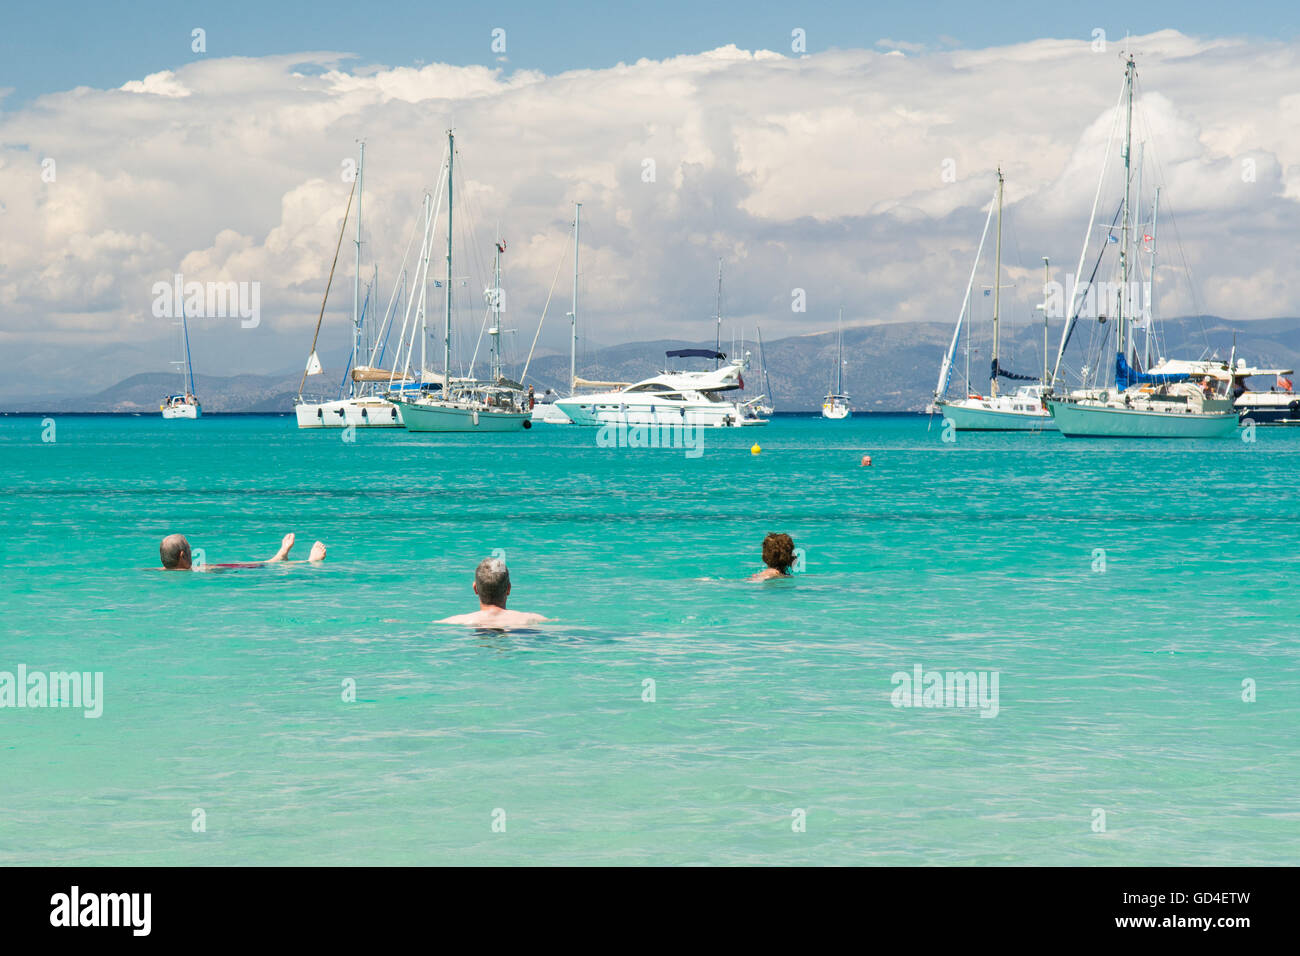 holidaymakers relaxing in the clear turquoise sea at Lakka, Paxos - looking out towards luxury boats moored offshore - Stock Image